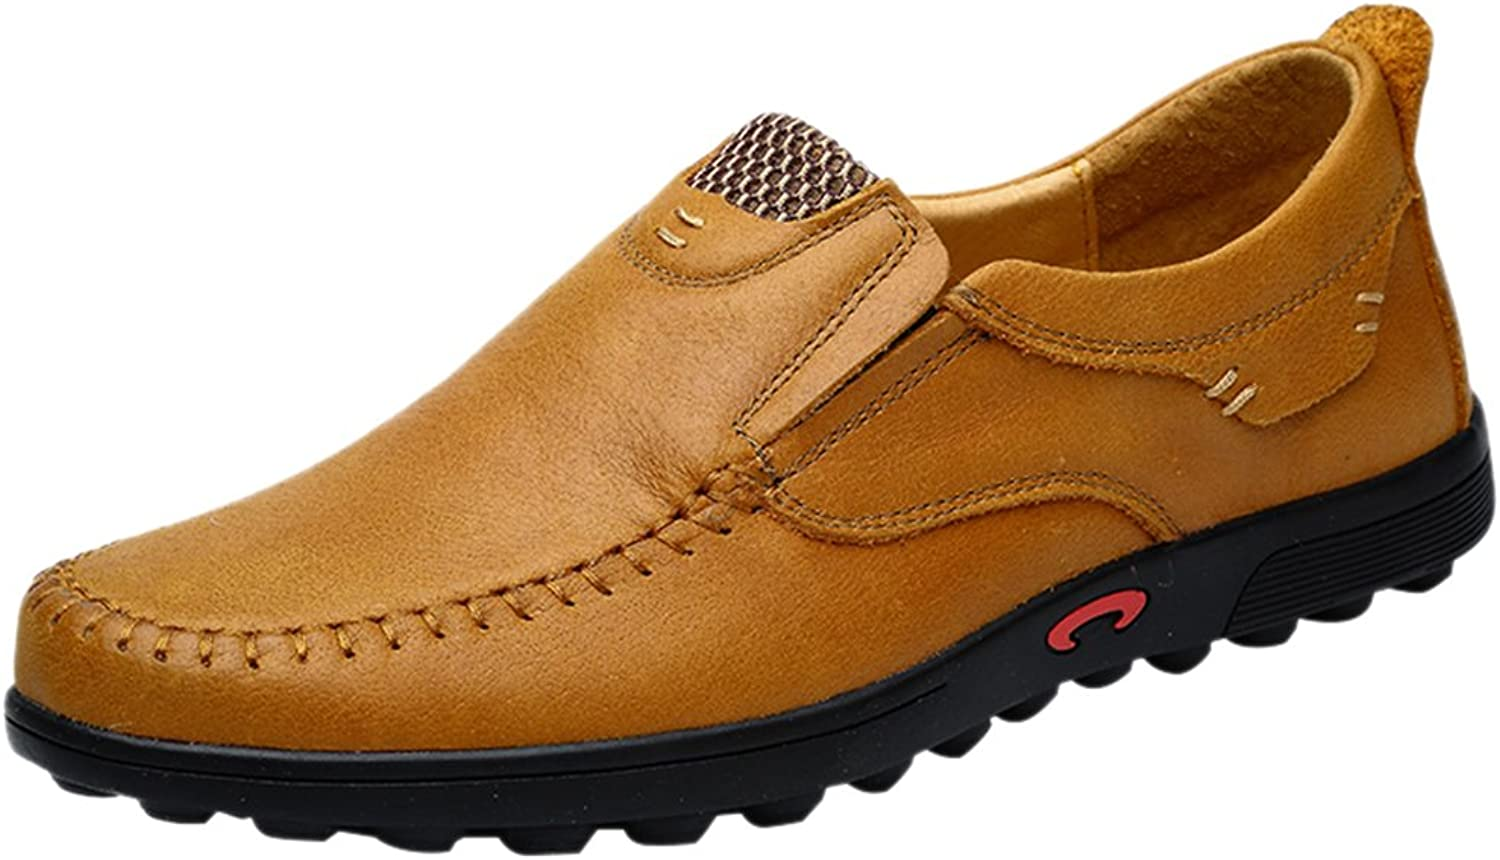 Snowman Lee Men's Driving Loafers Penny Loafer Wear-Resisting shoes Casual Loafers shoes